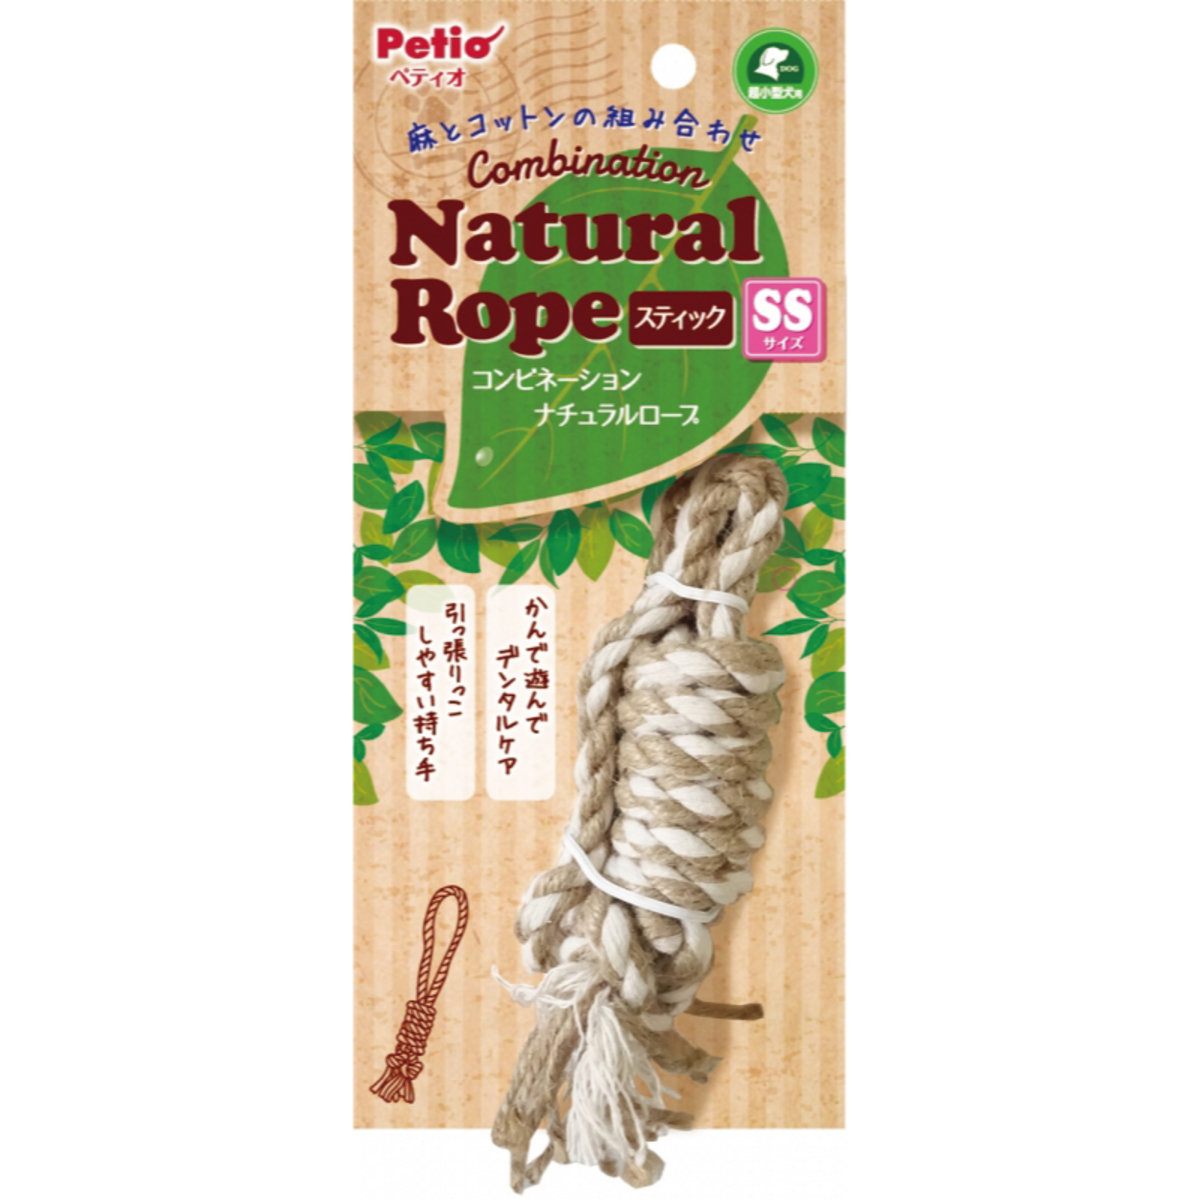 Combination Natural Rope Stick SS (W25173)